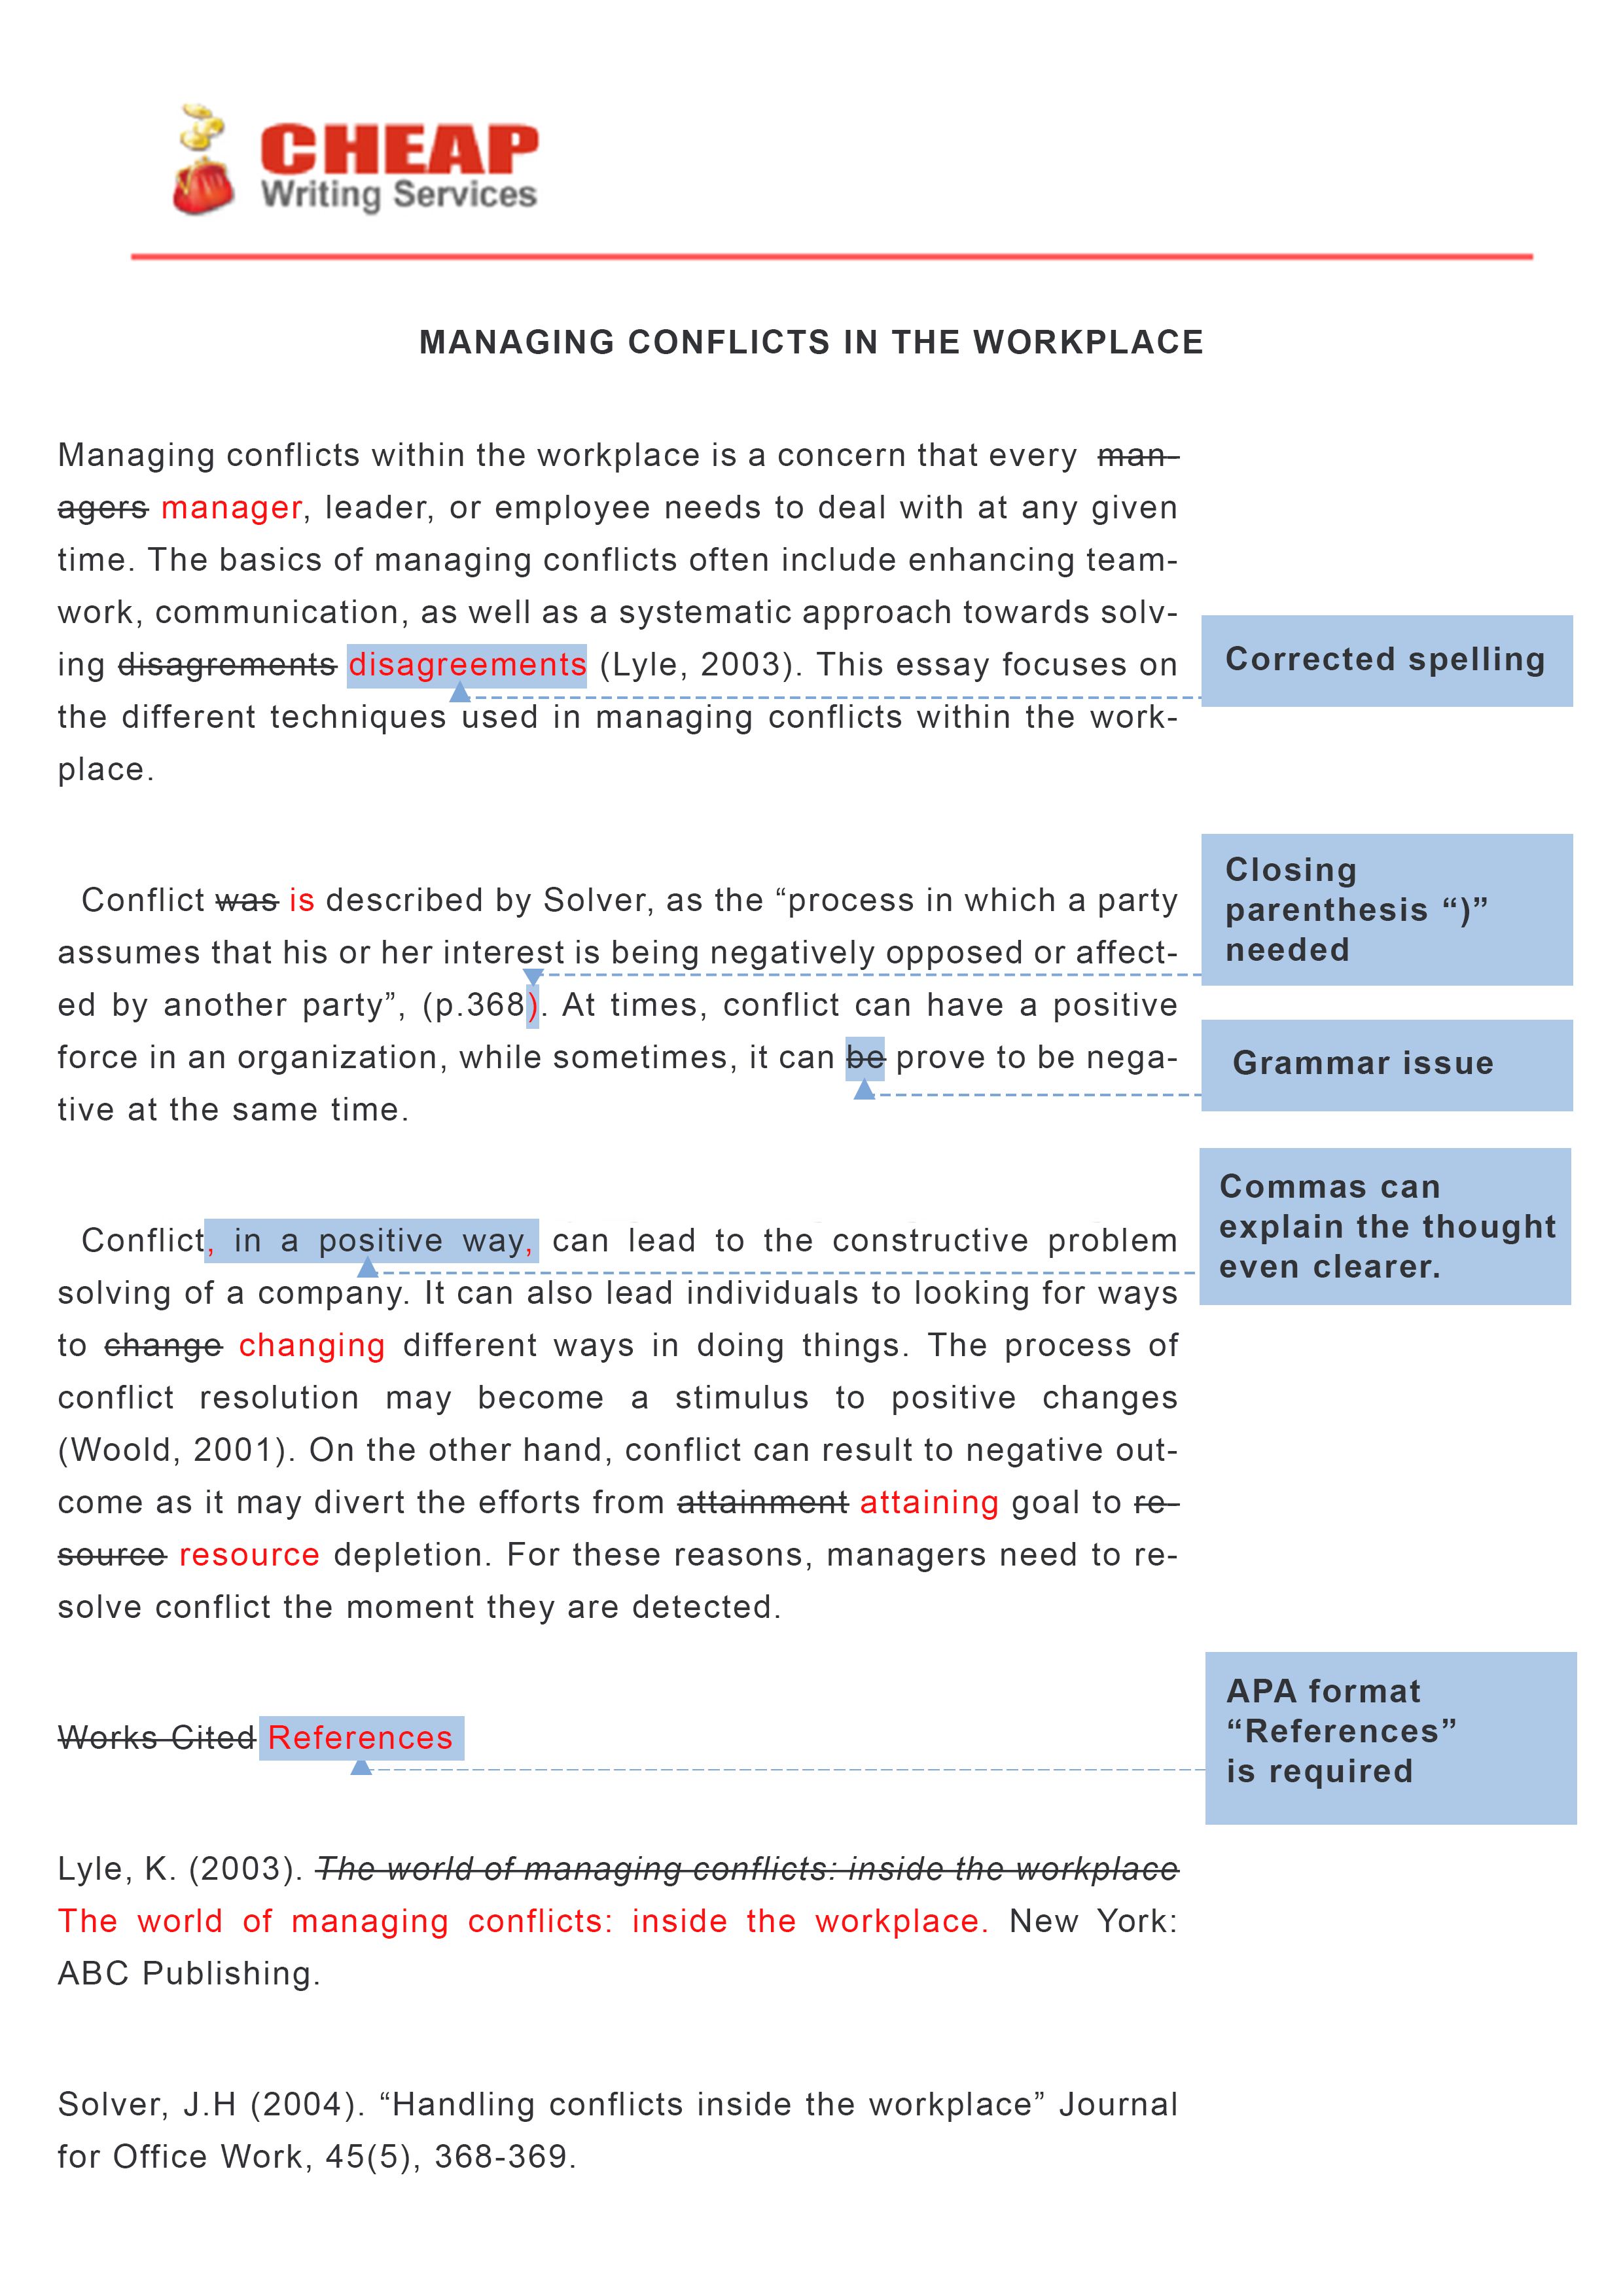 006 Essay Editing Example Stunning Services Writing Canada Plagiarism Full